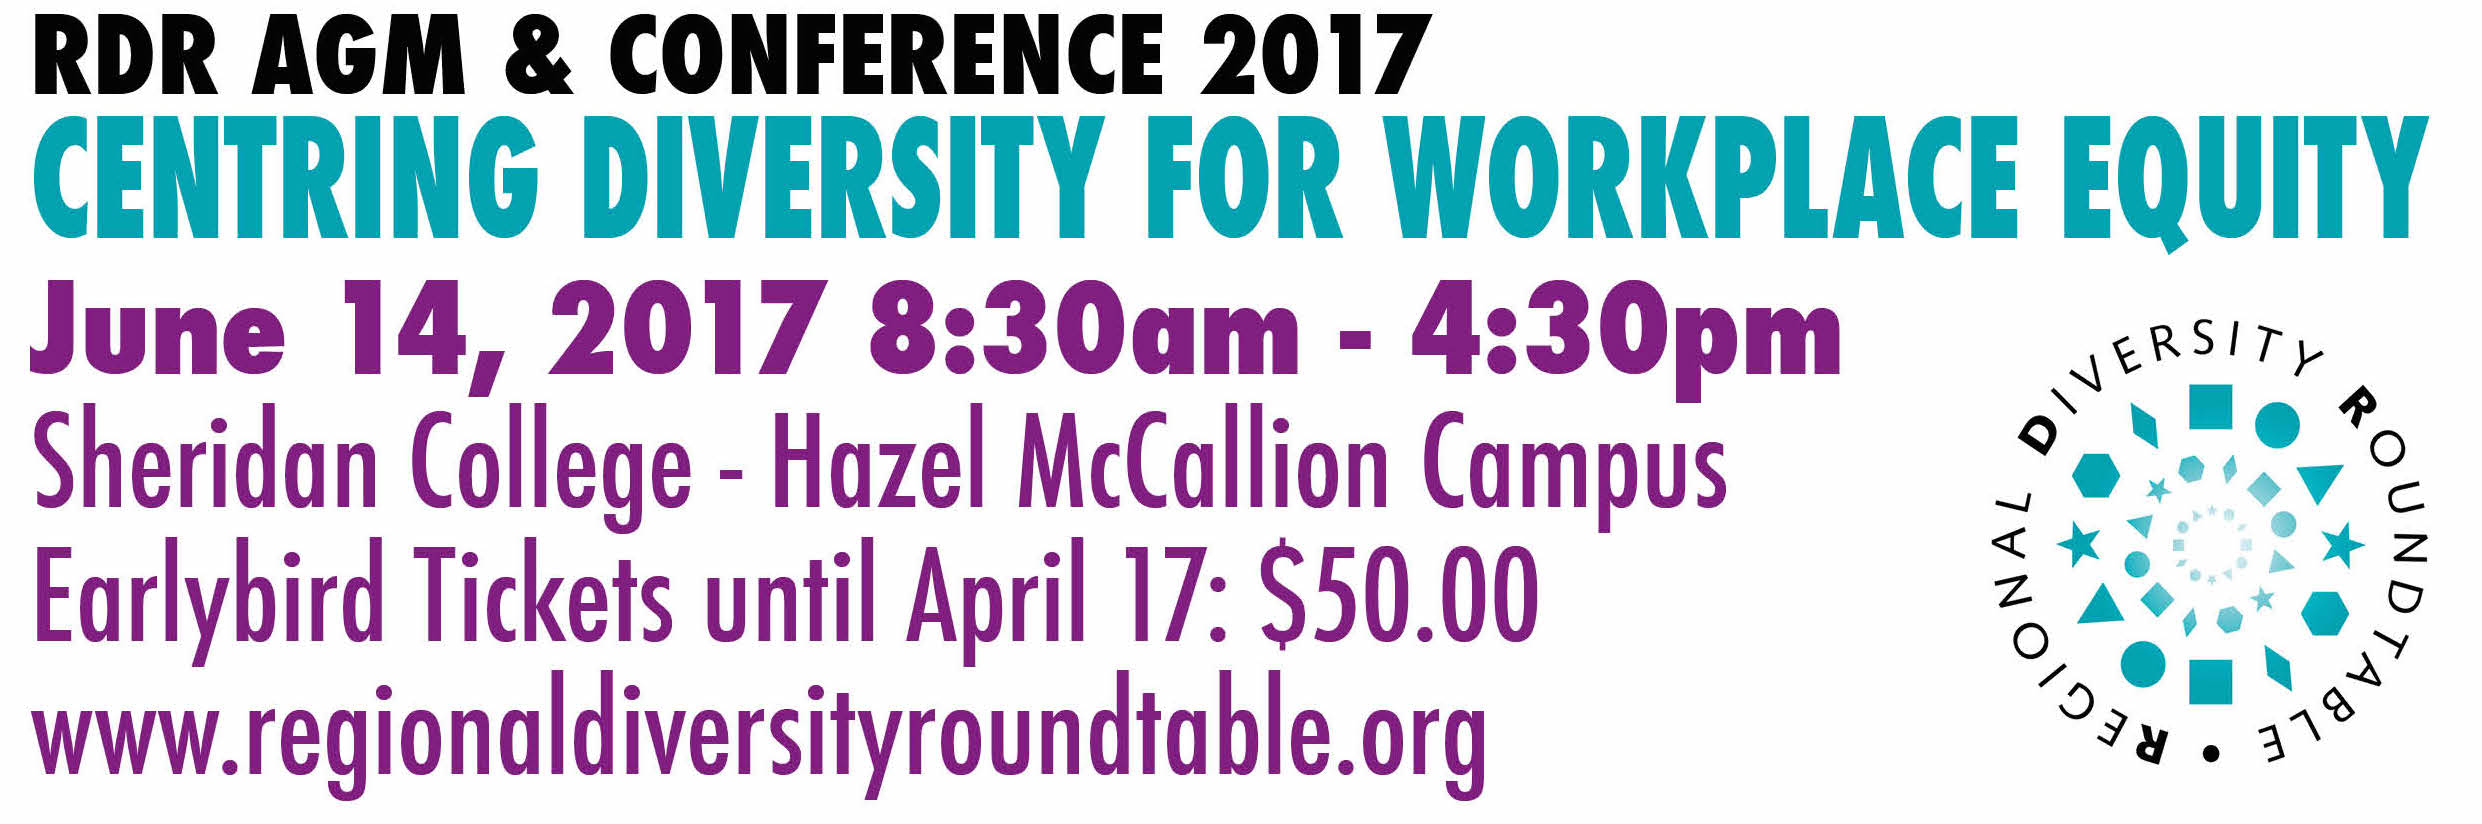 RDR AGM Conference 2017: Centring Diversity for Workplace Equity on June 14, 2017 at Sheridan College Hazel McCallion Campus, Early bird Tickets until April 17: $50.00